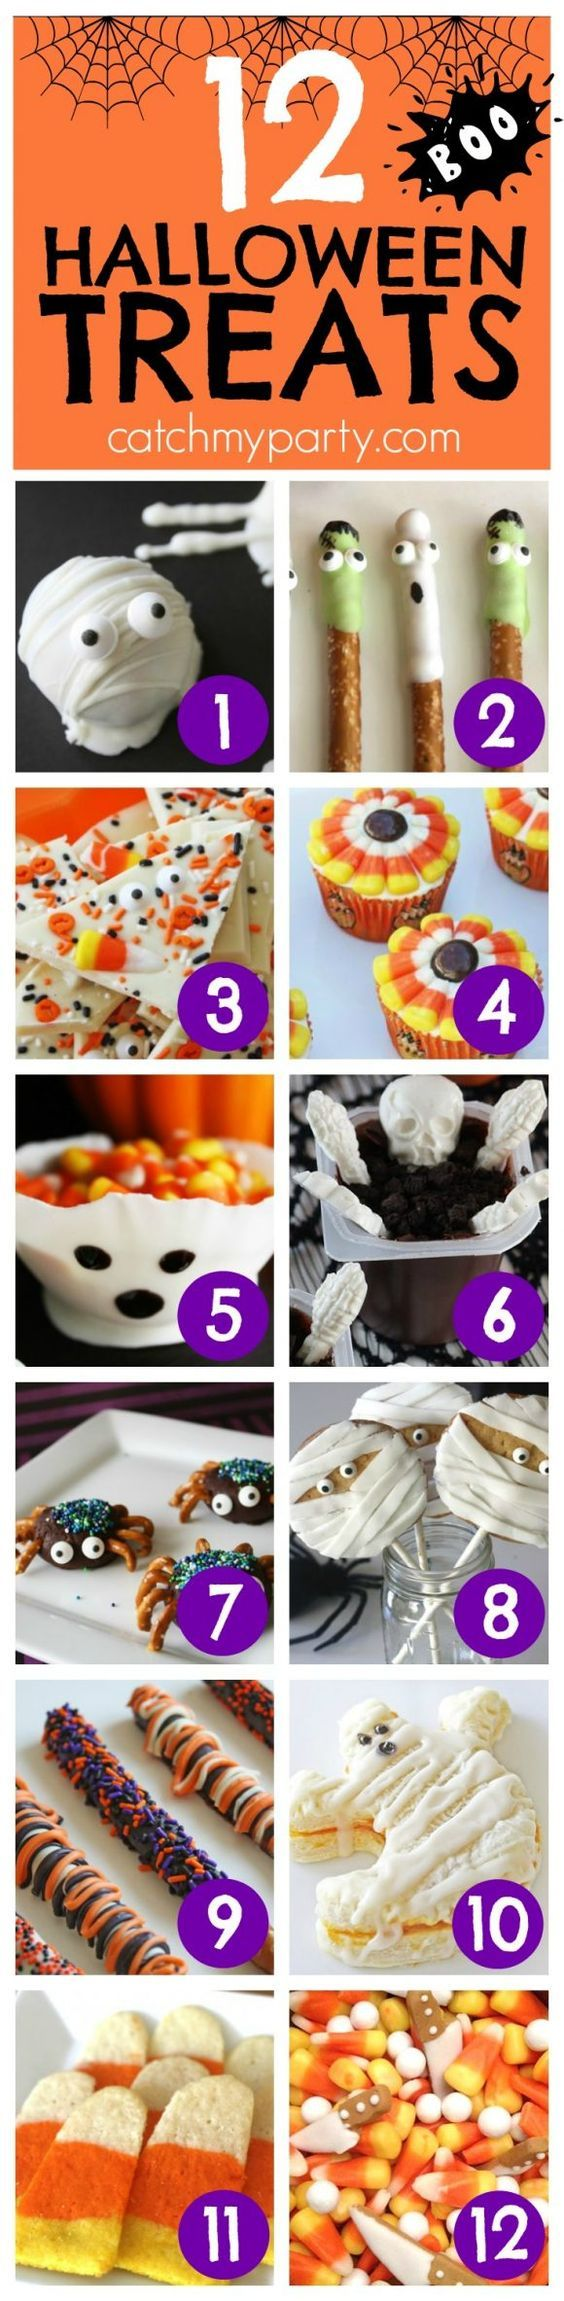 12 Easy Halloween Treats to make for your friends and family! Great for all your Halloween parties! | CatchMyParty.com